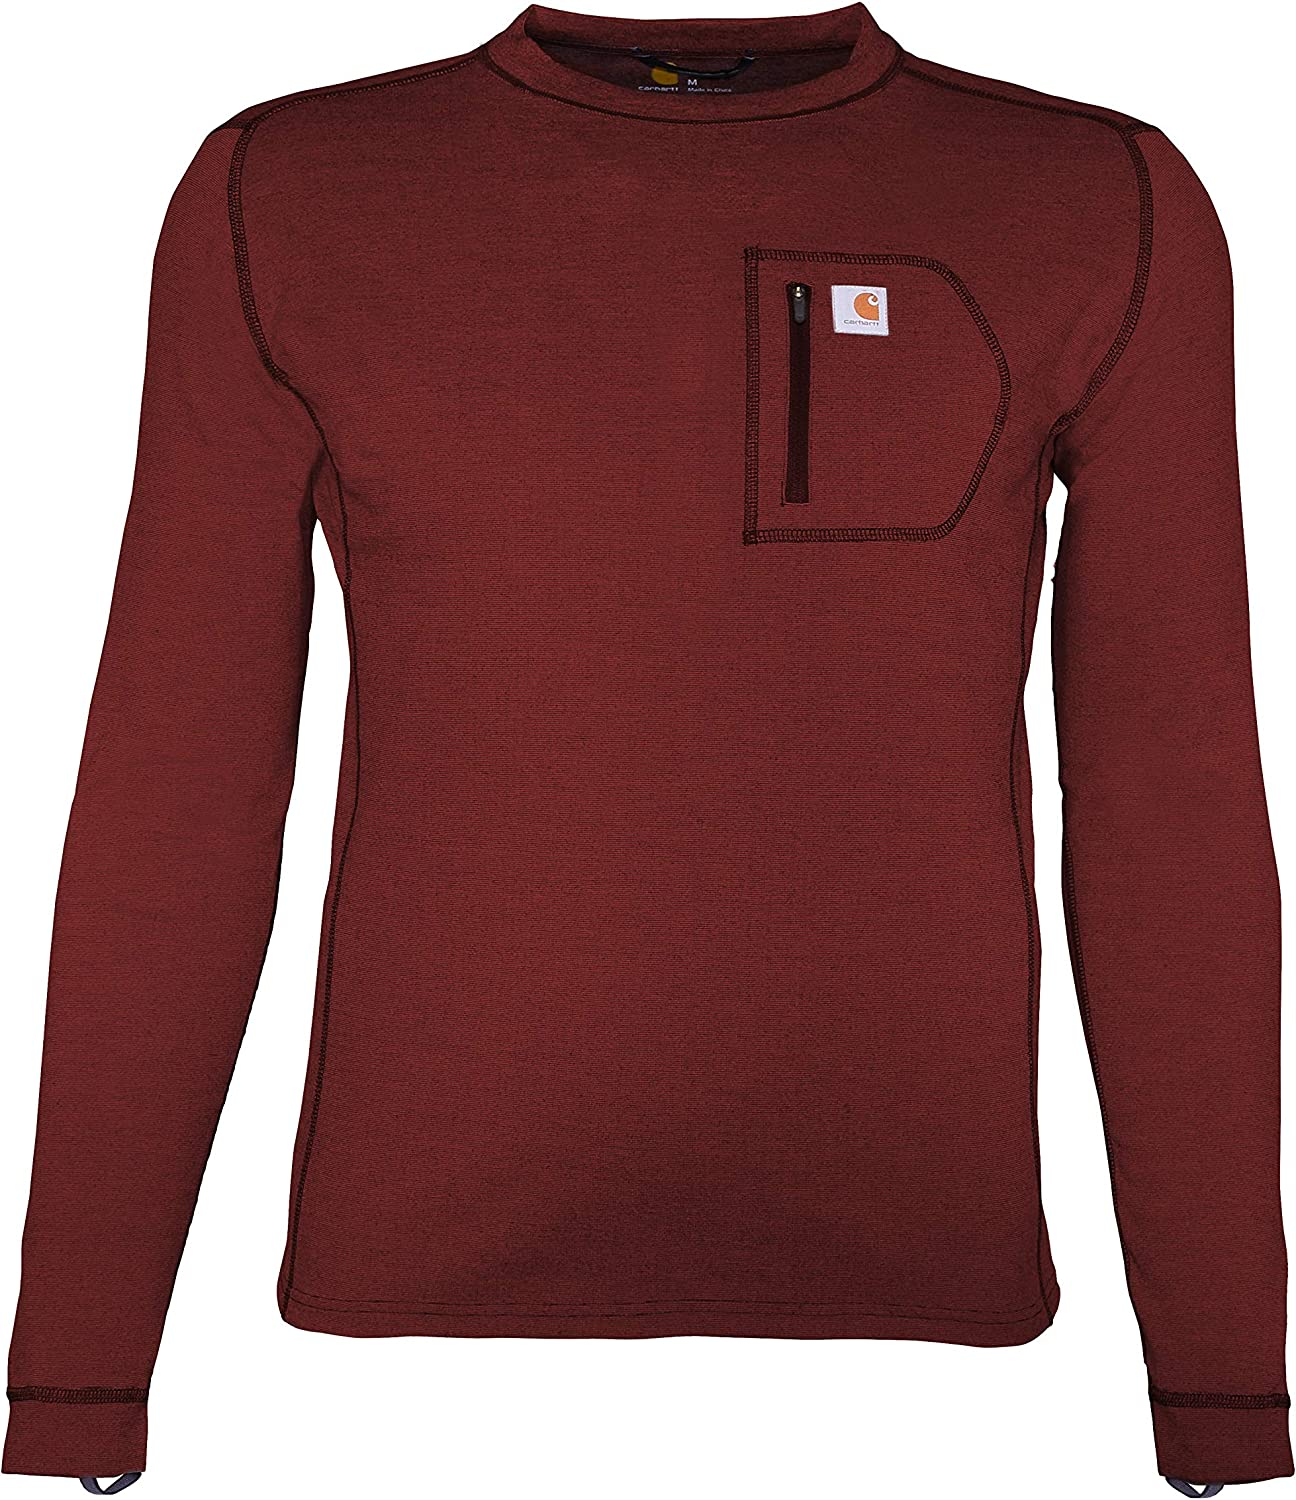 San Jose Mall Carhartt Men's Force Heavyweight Limited Special Price Thermal Layer Long Sleeve Base